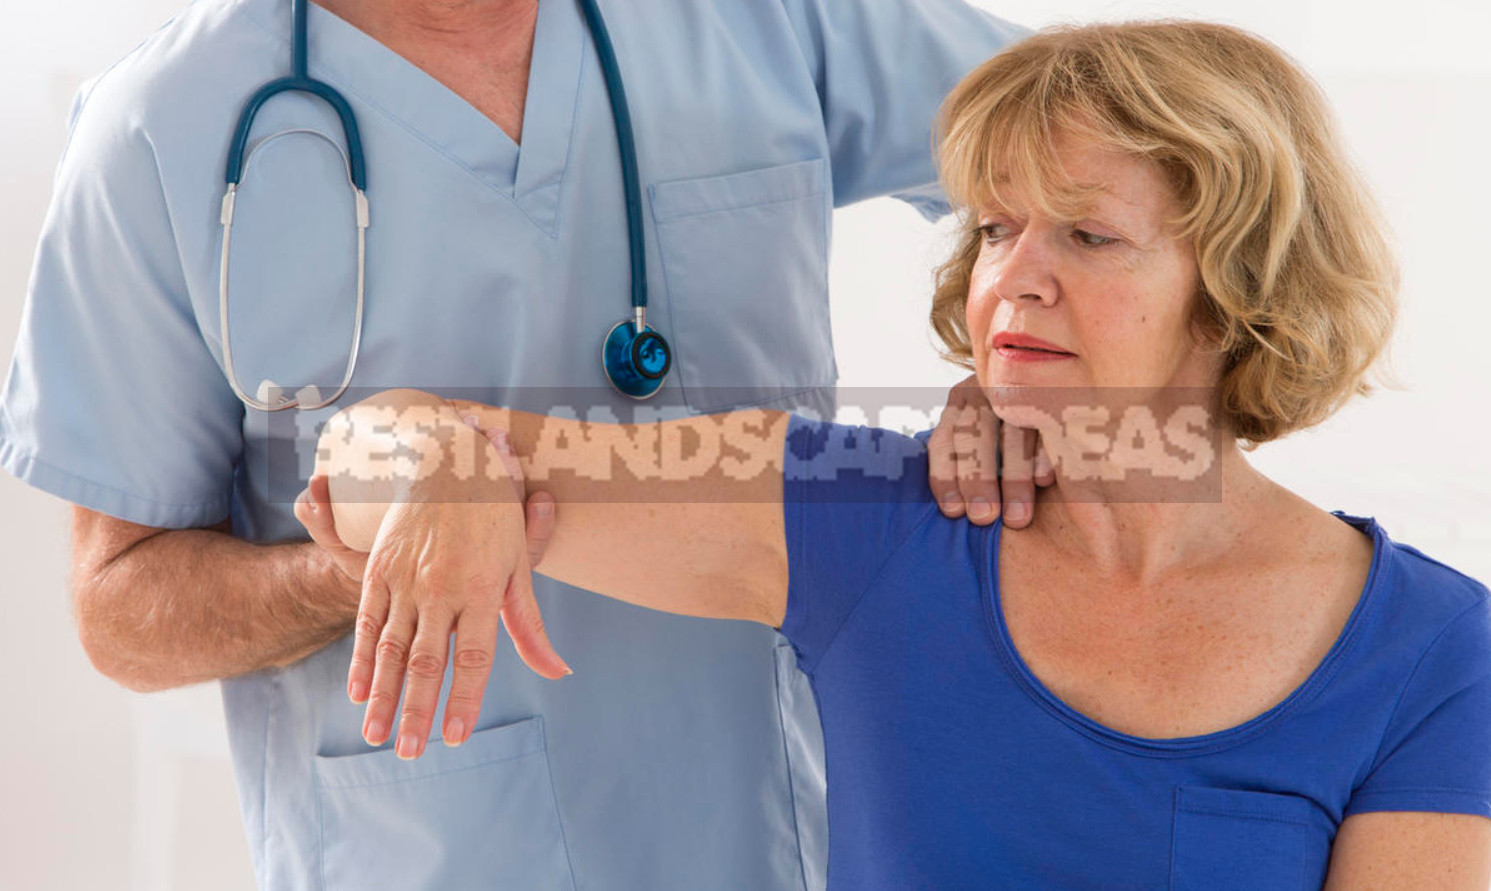 Why do joints hurt and how to live with it 1 - Why Do Joints Hurt and How to Live With It?